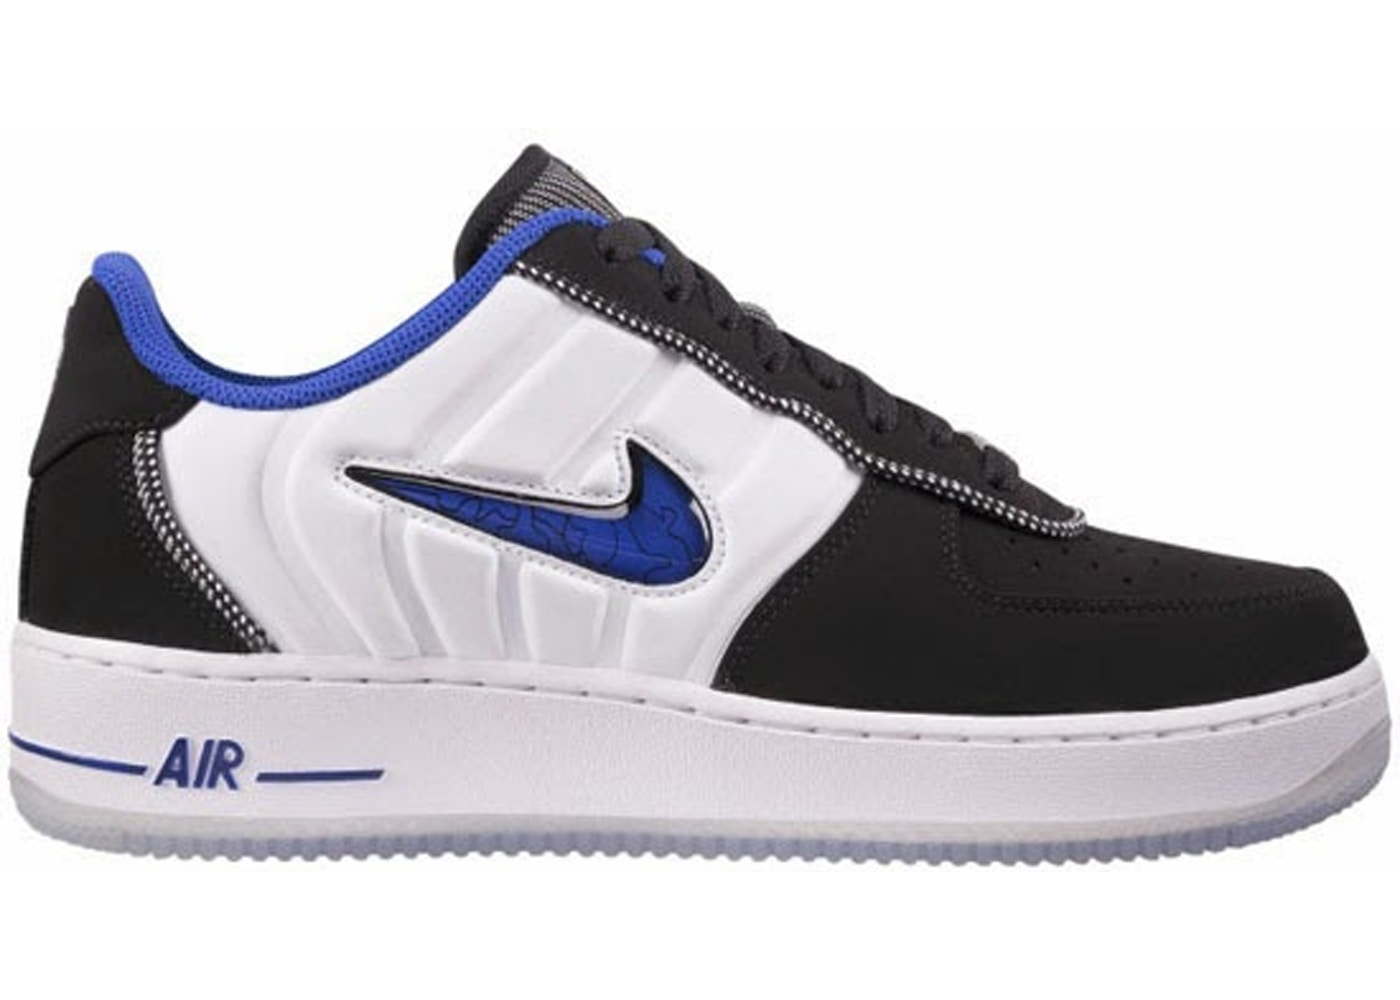 96a12158ae Air Force 1 Low CMFT Penny Hardaway - 629951-001